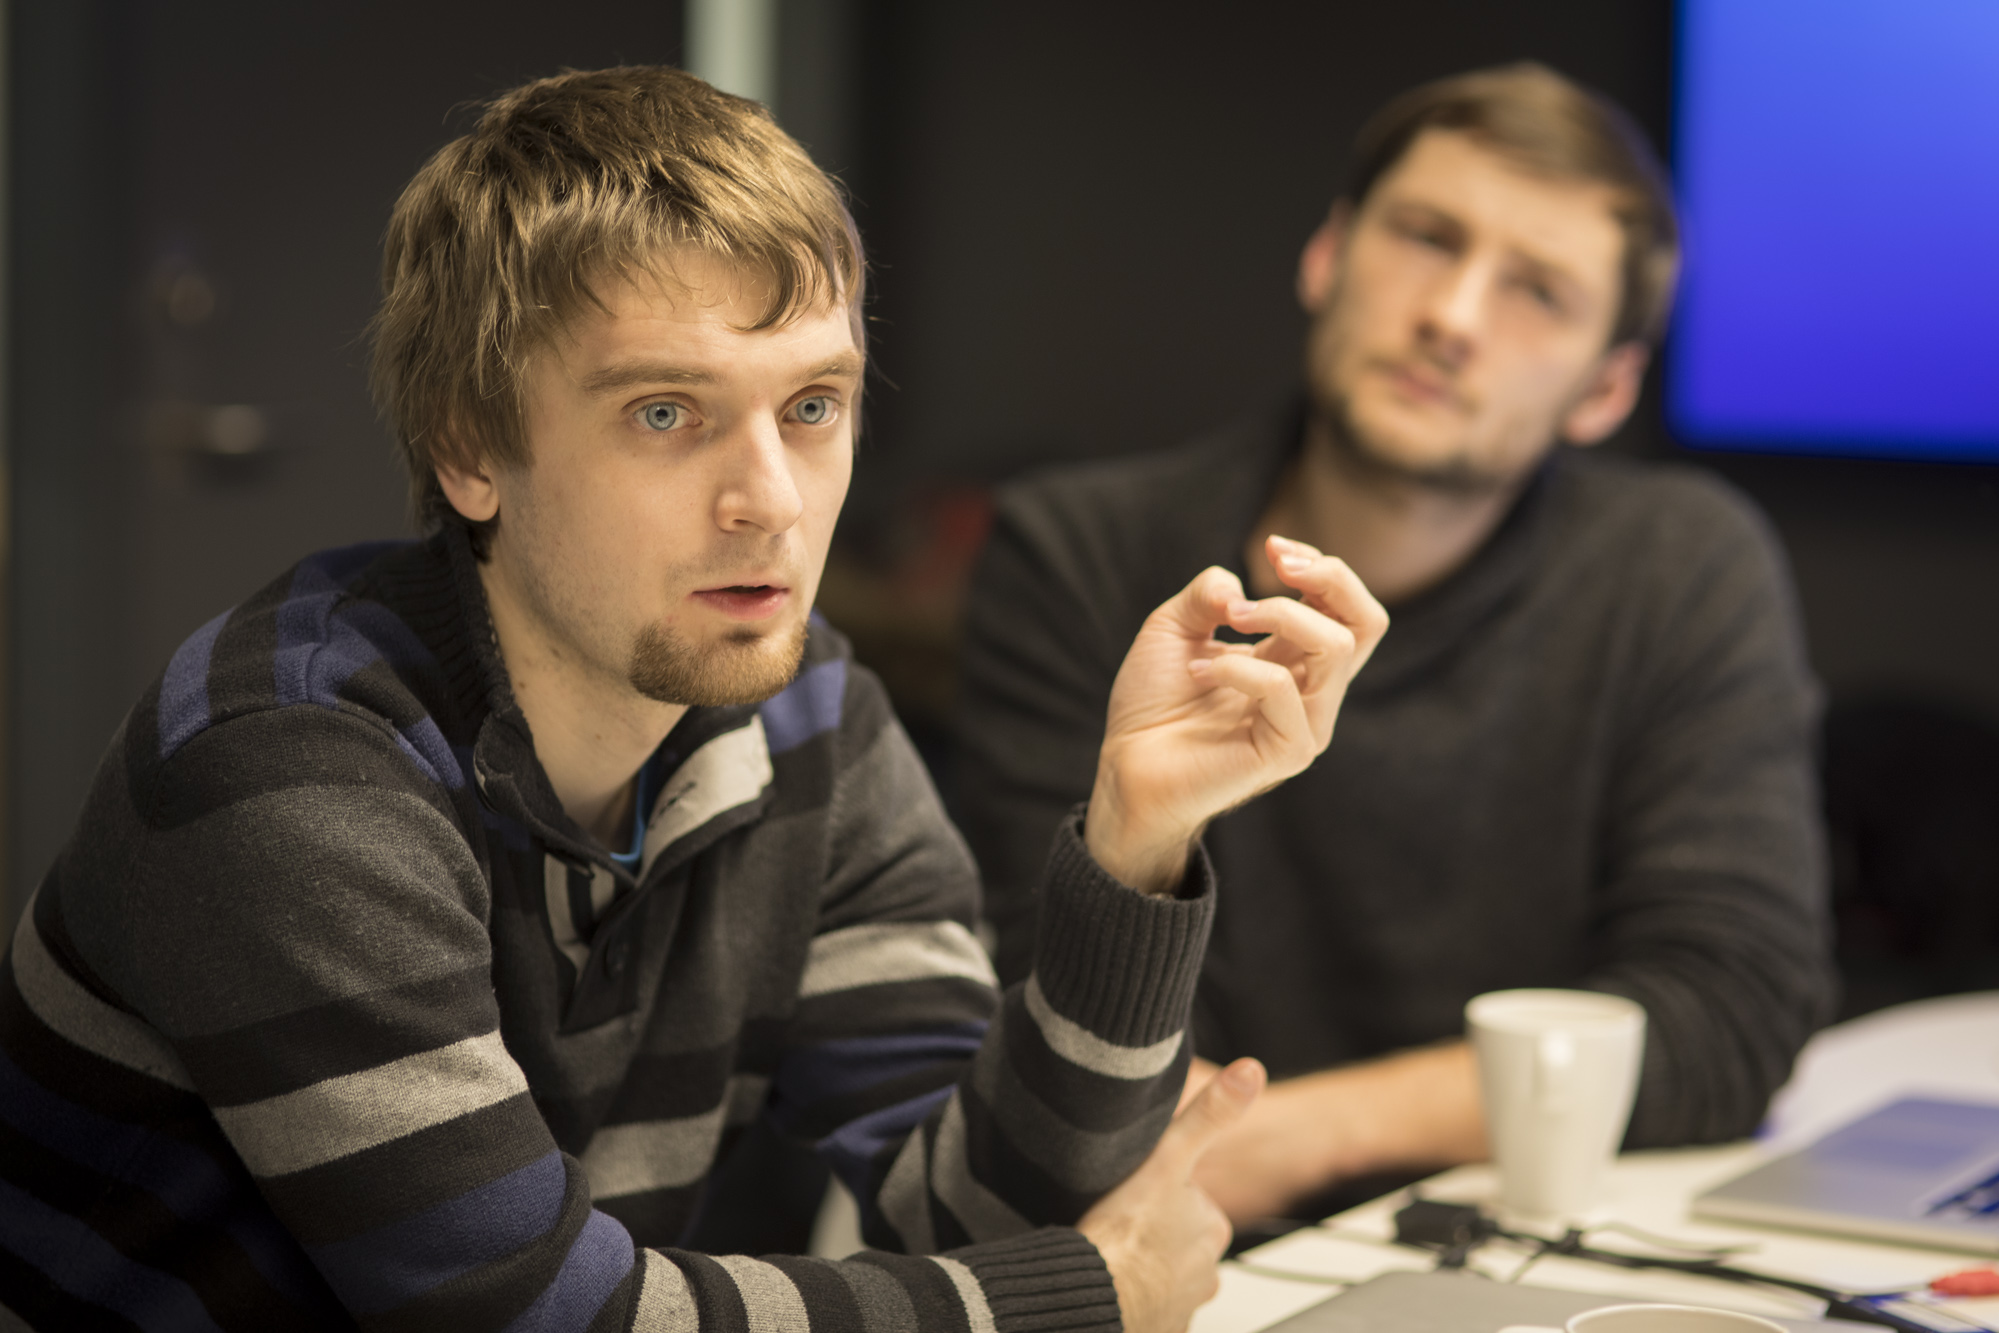 Maciej Kosiedowski was one of the six developers in the team. Here at the workshop in Oslo in December.